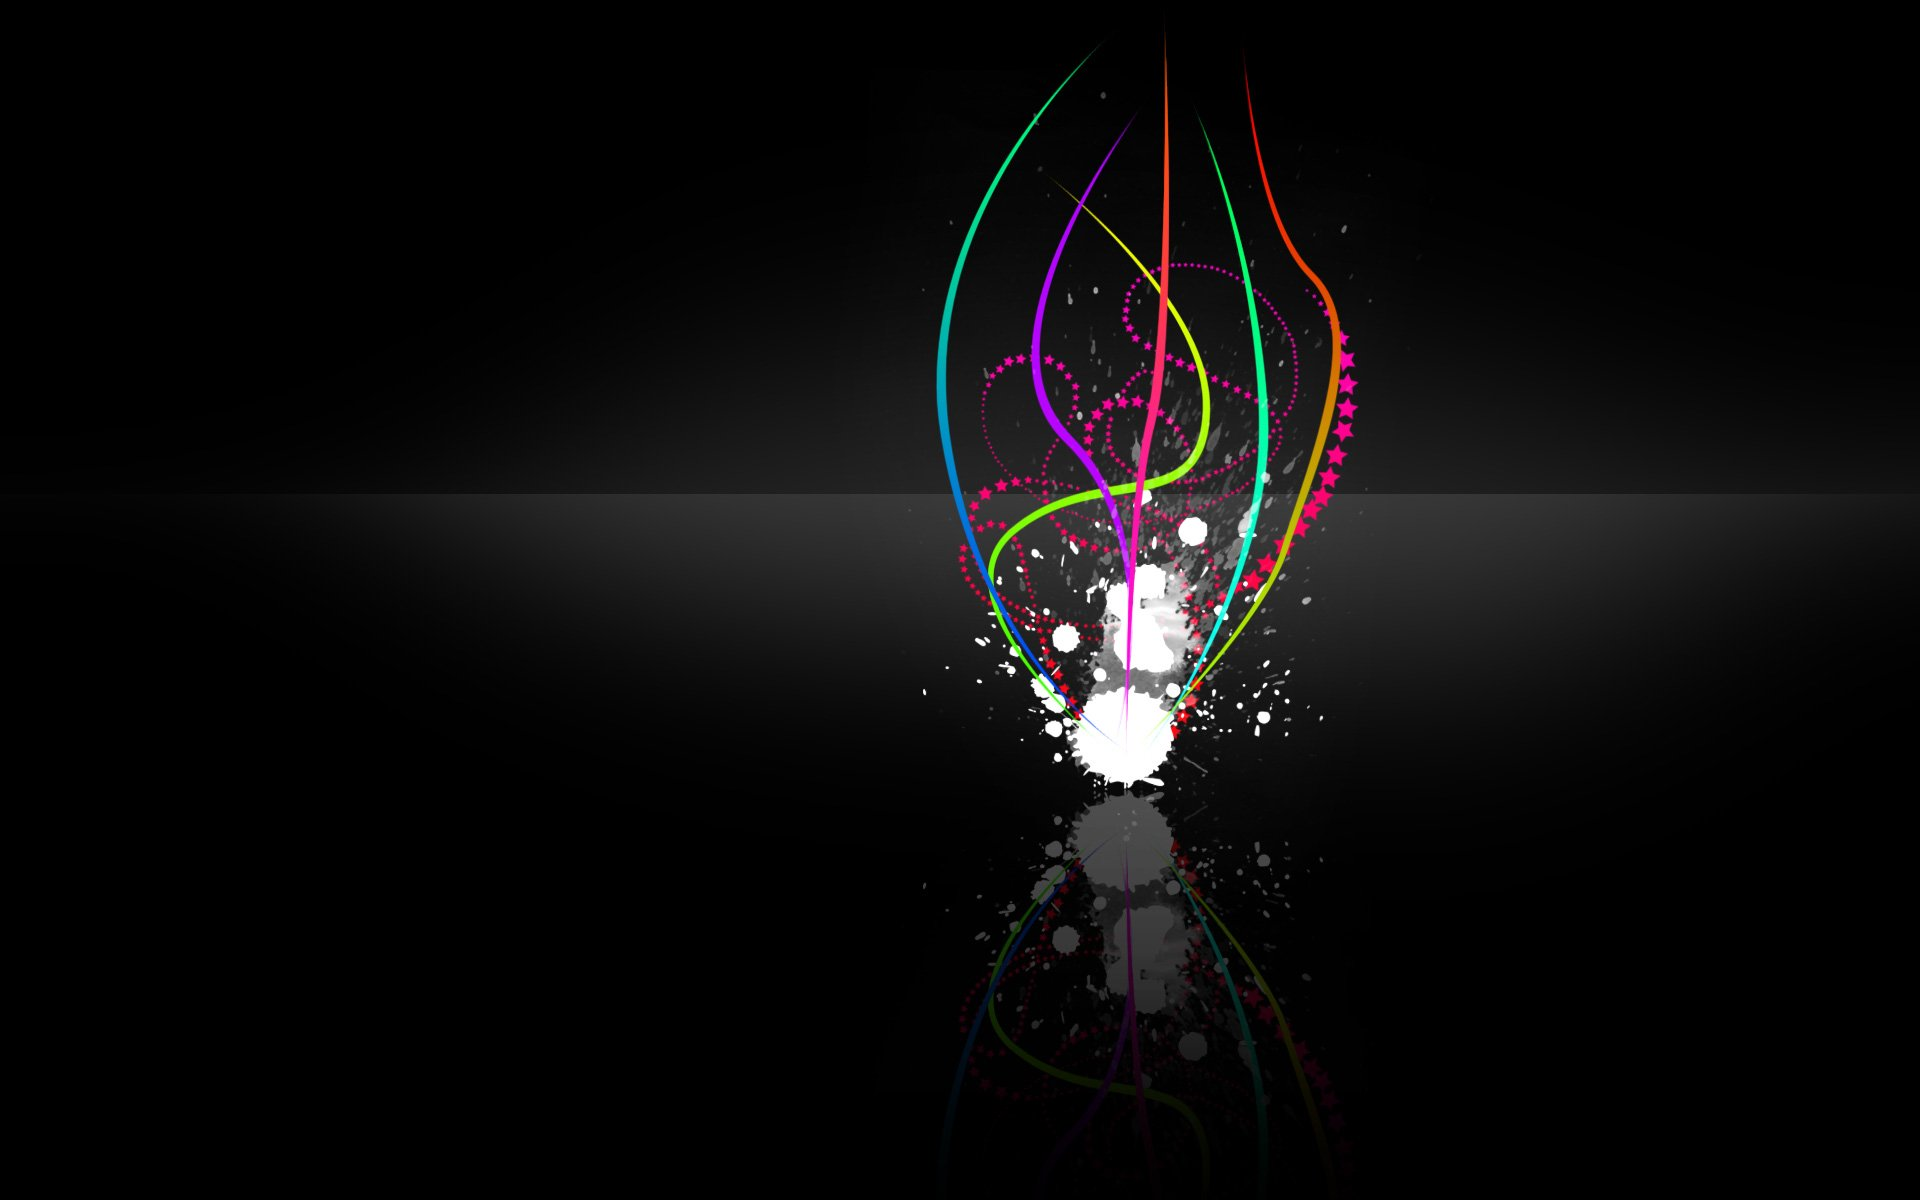 Wallpapers ID:70053